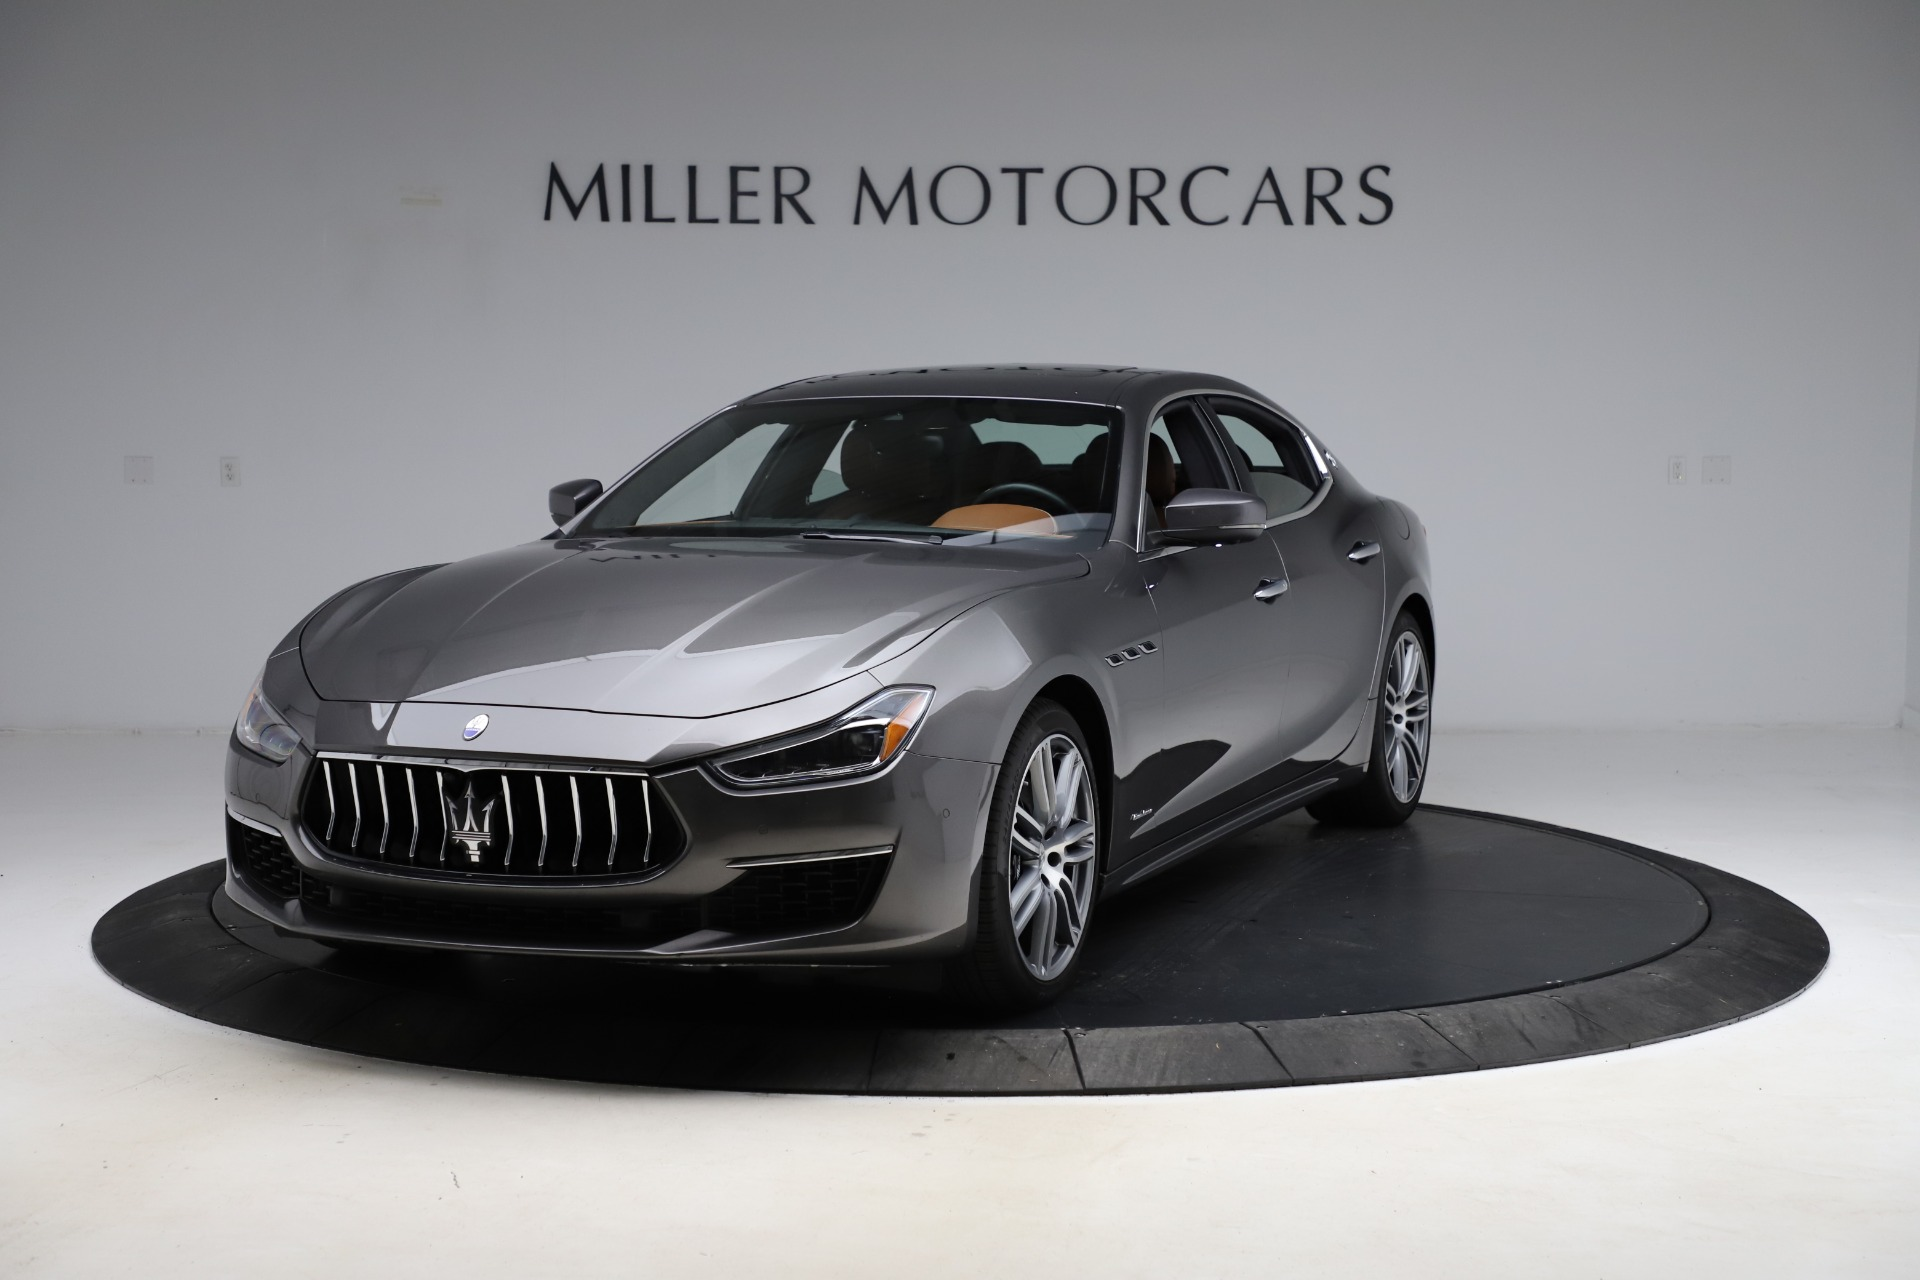 Used 2018 Maserati Ghibli SQ4 GranLusso for sale $51,900 at Pagani of Greenwich in Greenwich CT 06830 1